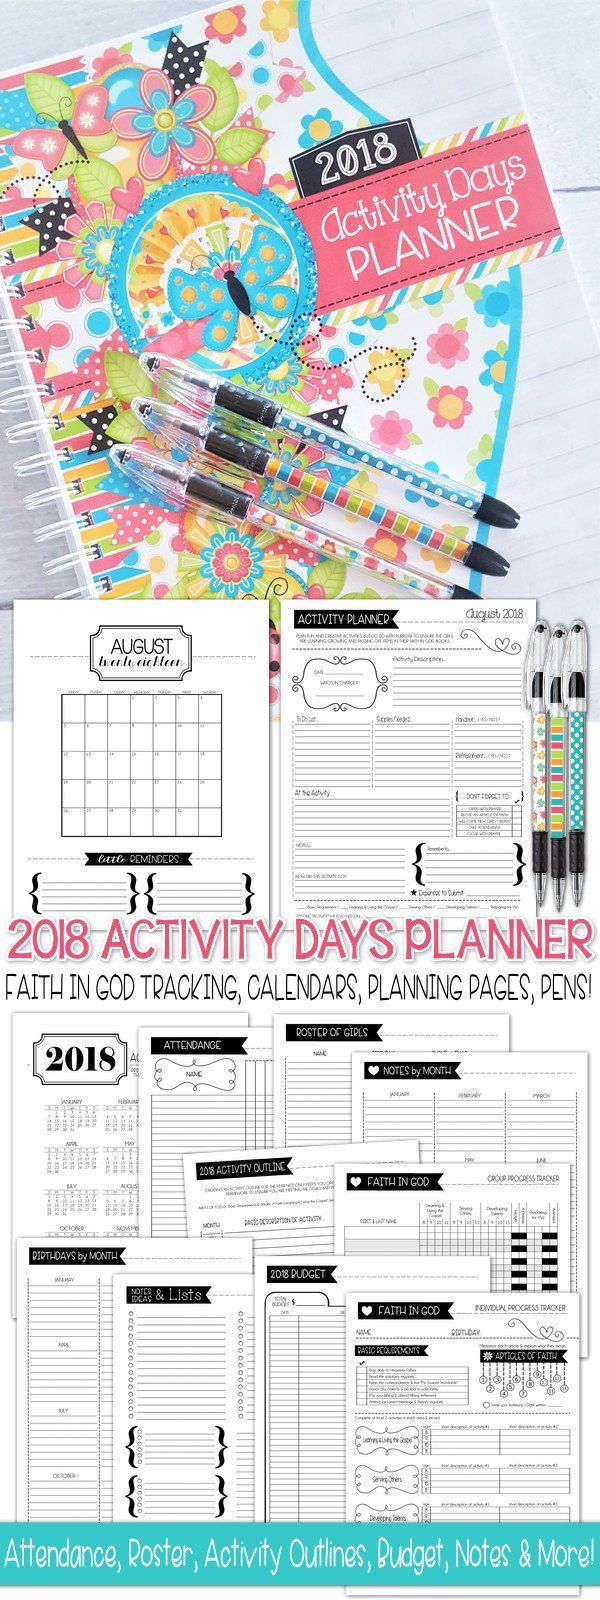 2018 Activity Days Planner PRINTABLE | Domingo, Invitaciones y Varios